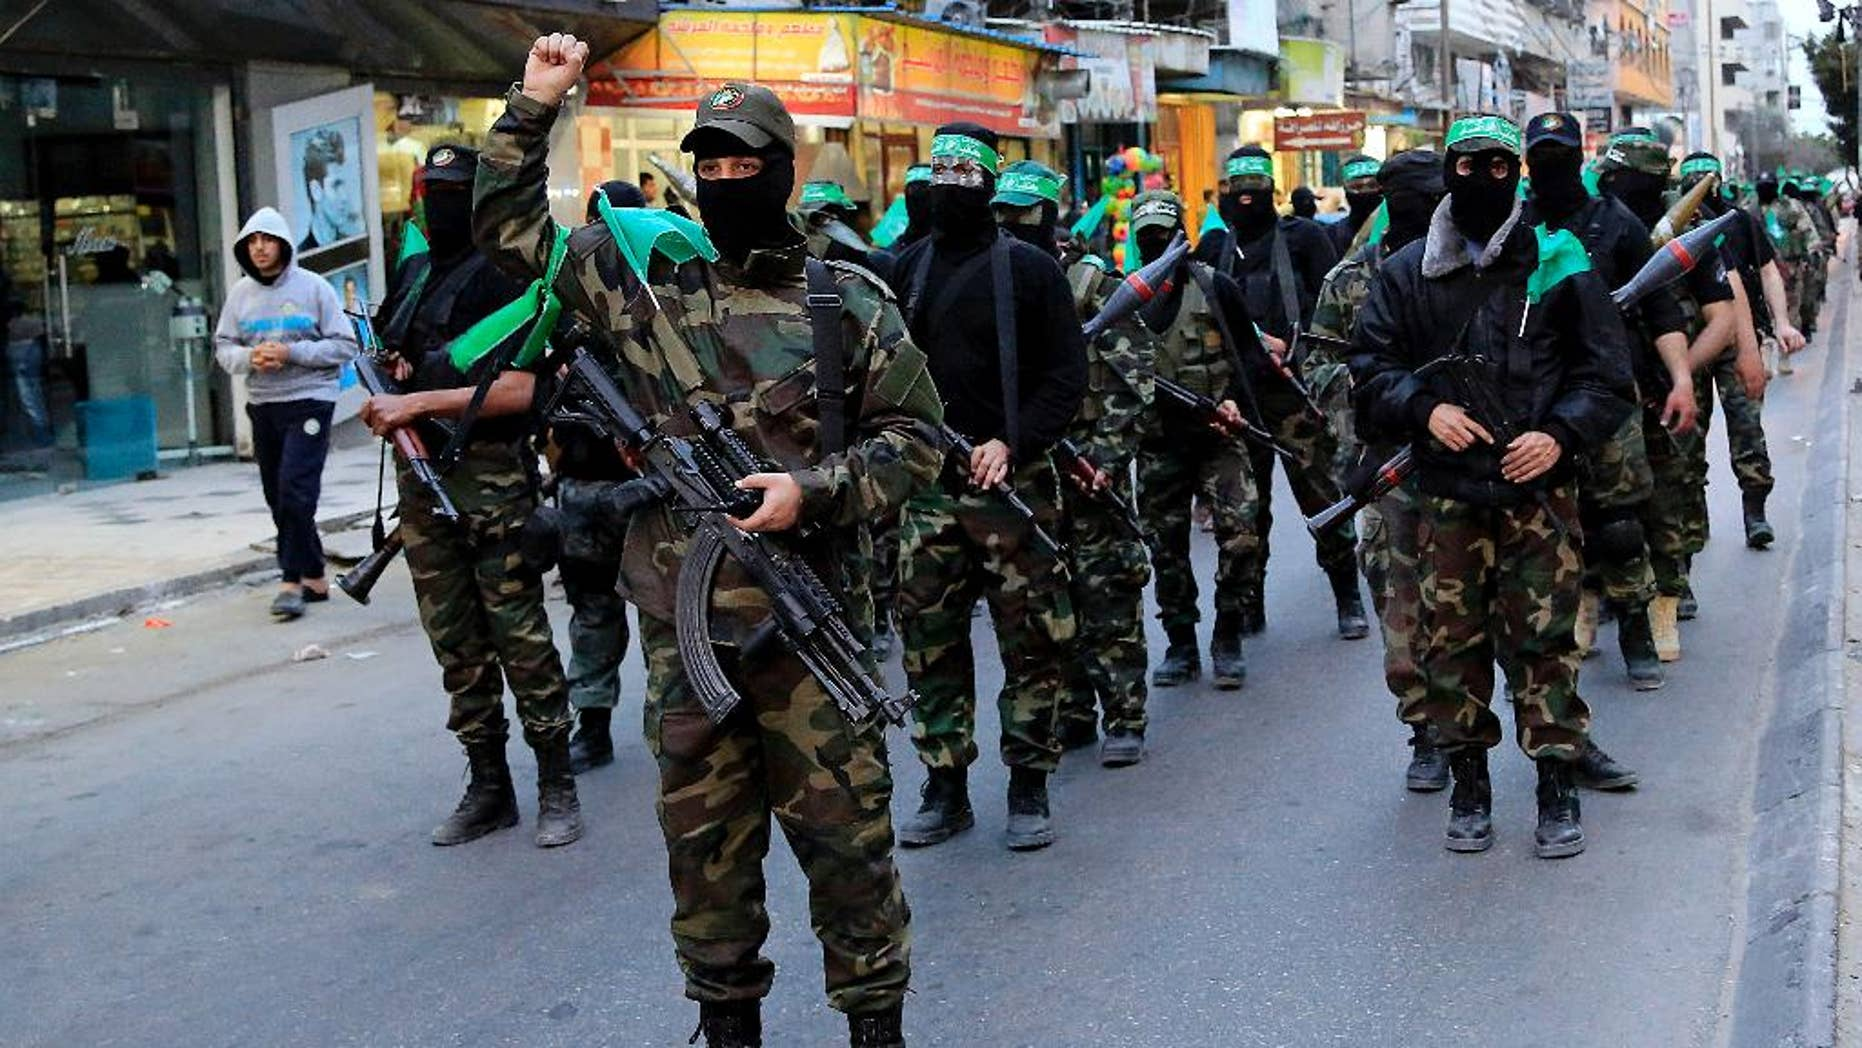 FILE - In this Monday, March 23, 2015, file photo, Palestinian masked militants of Izzedine al-Qassam Brigades, a military wing of Hamas, take part in a parade to mark the 11th anniversary of the Israeli assassination of Hamas spiritual leader Sheikh Ahmad Yassin in Gaza, in the northern Gaza Strip. Egypt's state news agency is reporting a court has overturned a decision naming Hamas a terrorist organization. The MENA news agency reported Saturday that the Urgent Matters Appeals Court made the decision. They cited a lack of jurisdiction for overturning the early court's ruling. (AP Photo/Adel Hana, File)